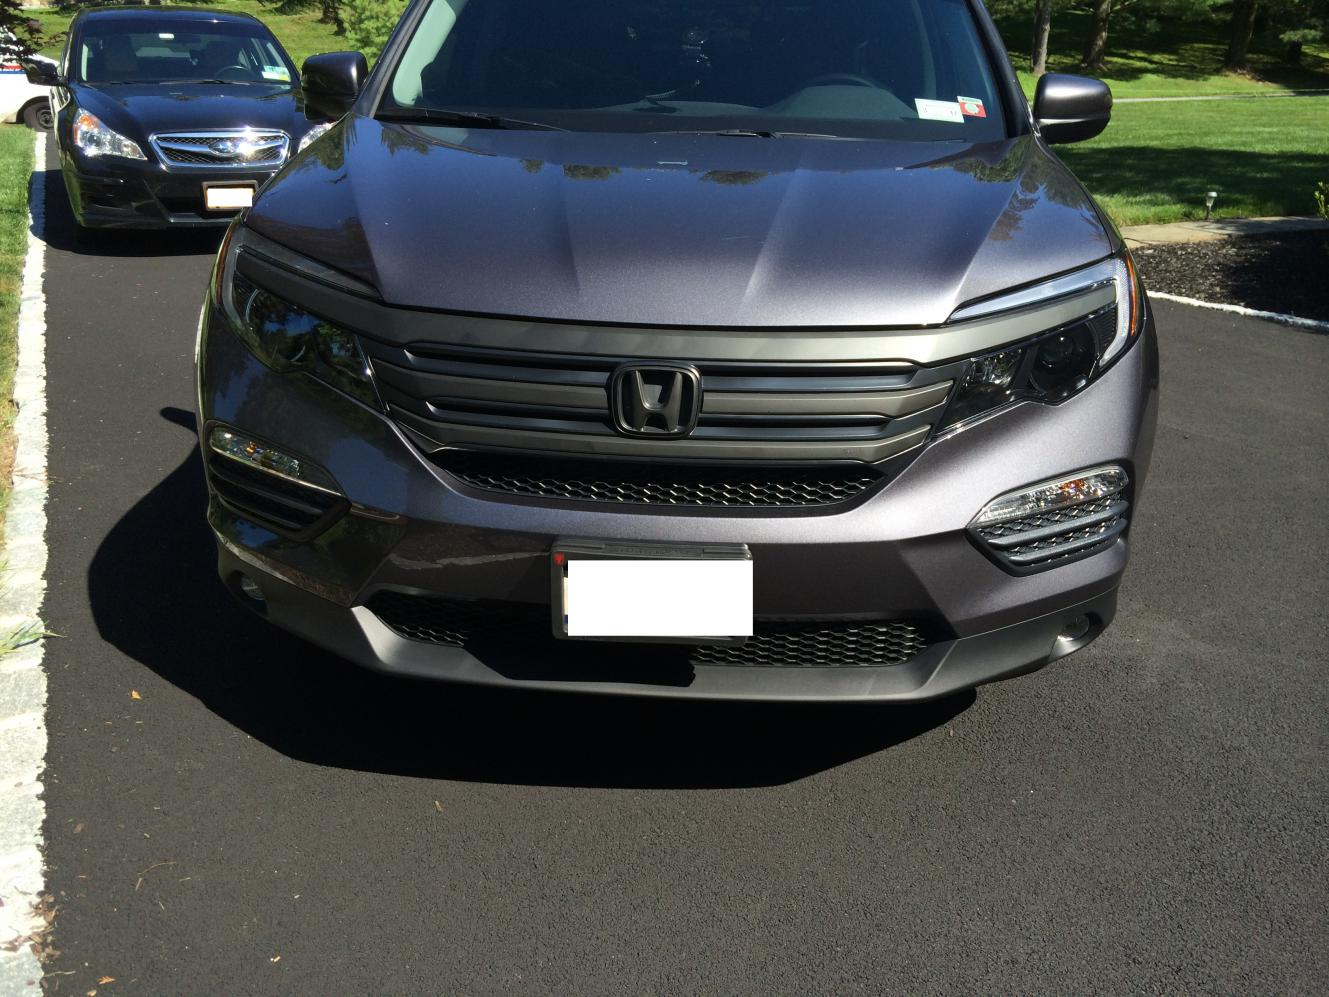 3 holes in the plastic grill below the driver side signal light - Page 3 - Honda Pilot - Honda ...